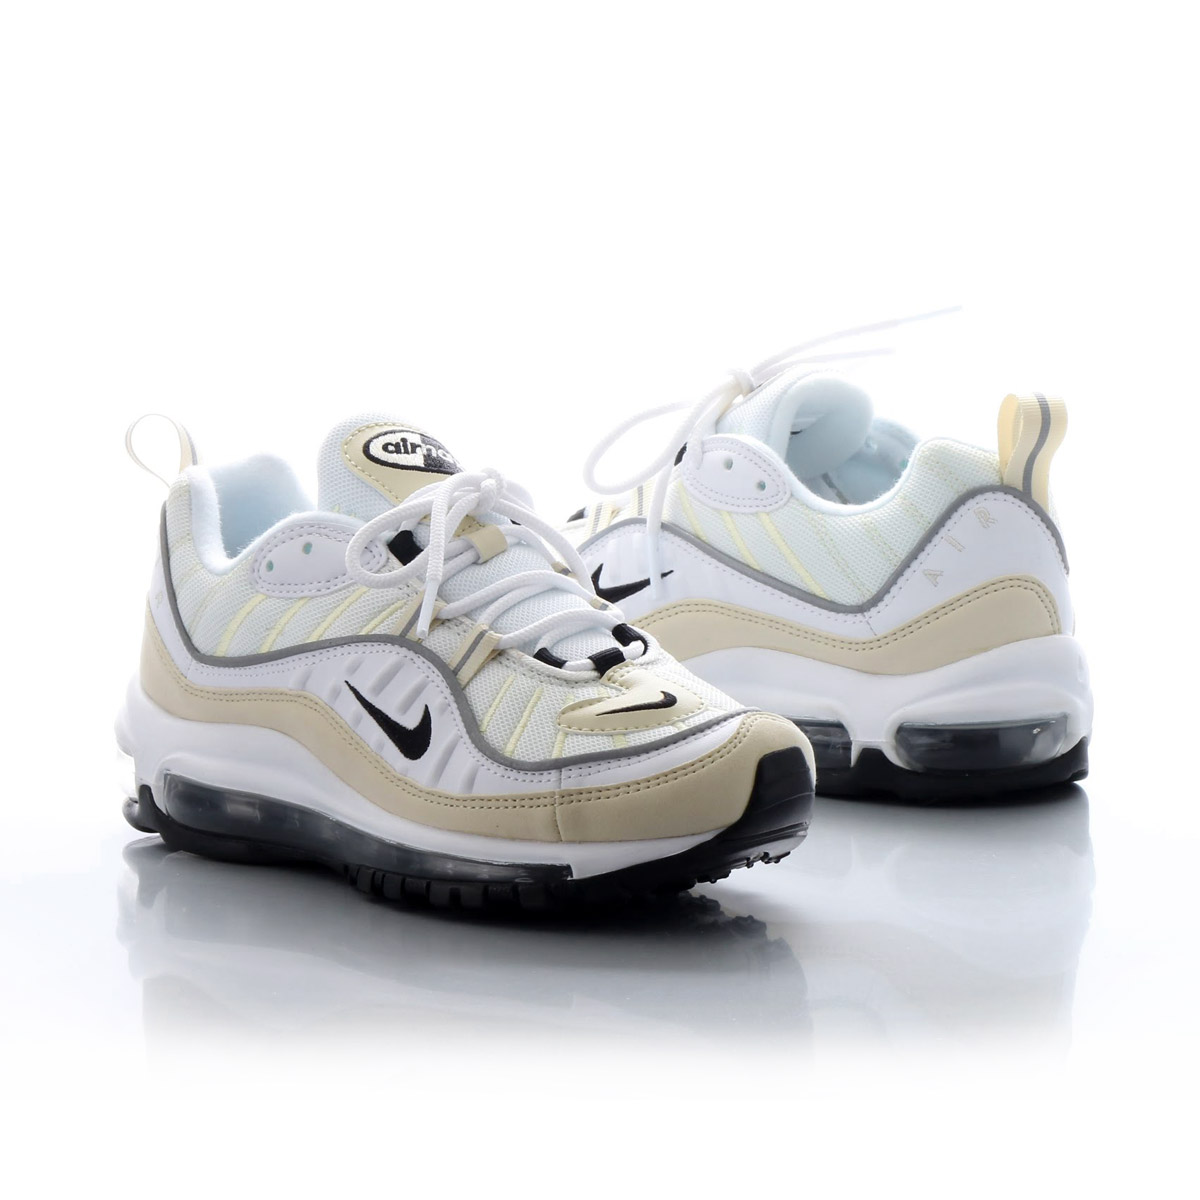 NIKE W AIR MAX 98 (Nike women Air Max 98) (WHITE BLACK-FOSSIL-REFLECT  SILVER) 98b3a04d3